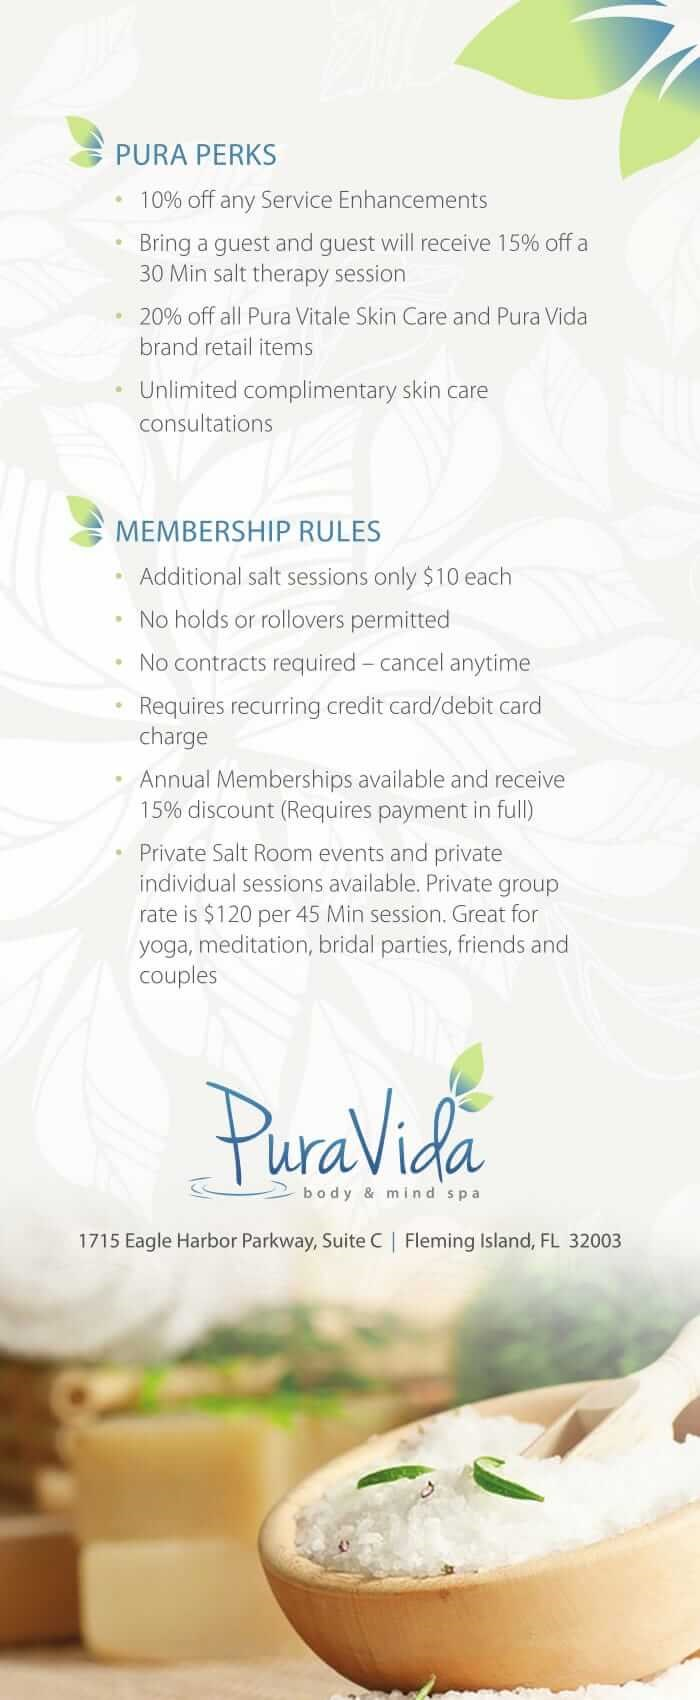 Pura Vida Rack Card SALT Memberships